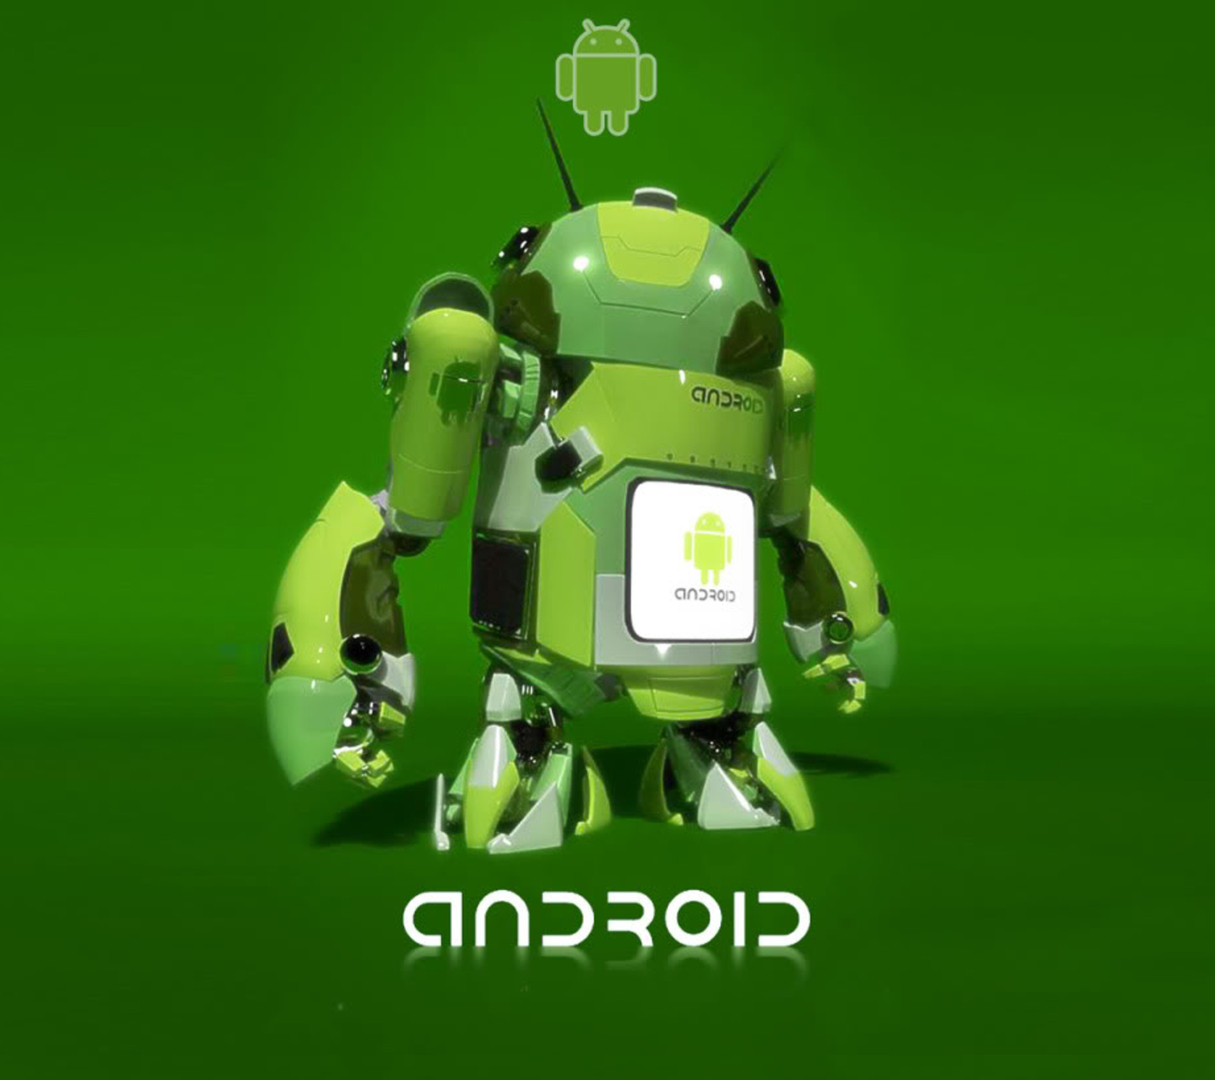 Cool Android Robot Hd Wallpaper Download wallpapers page 1215x1080